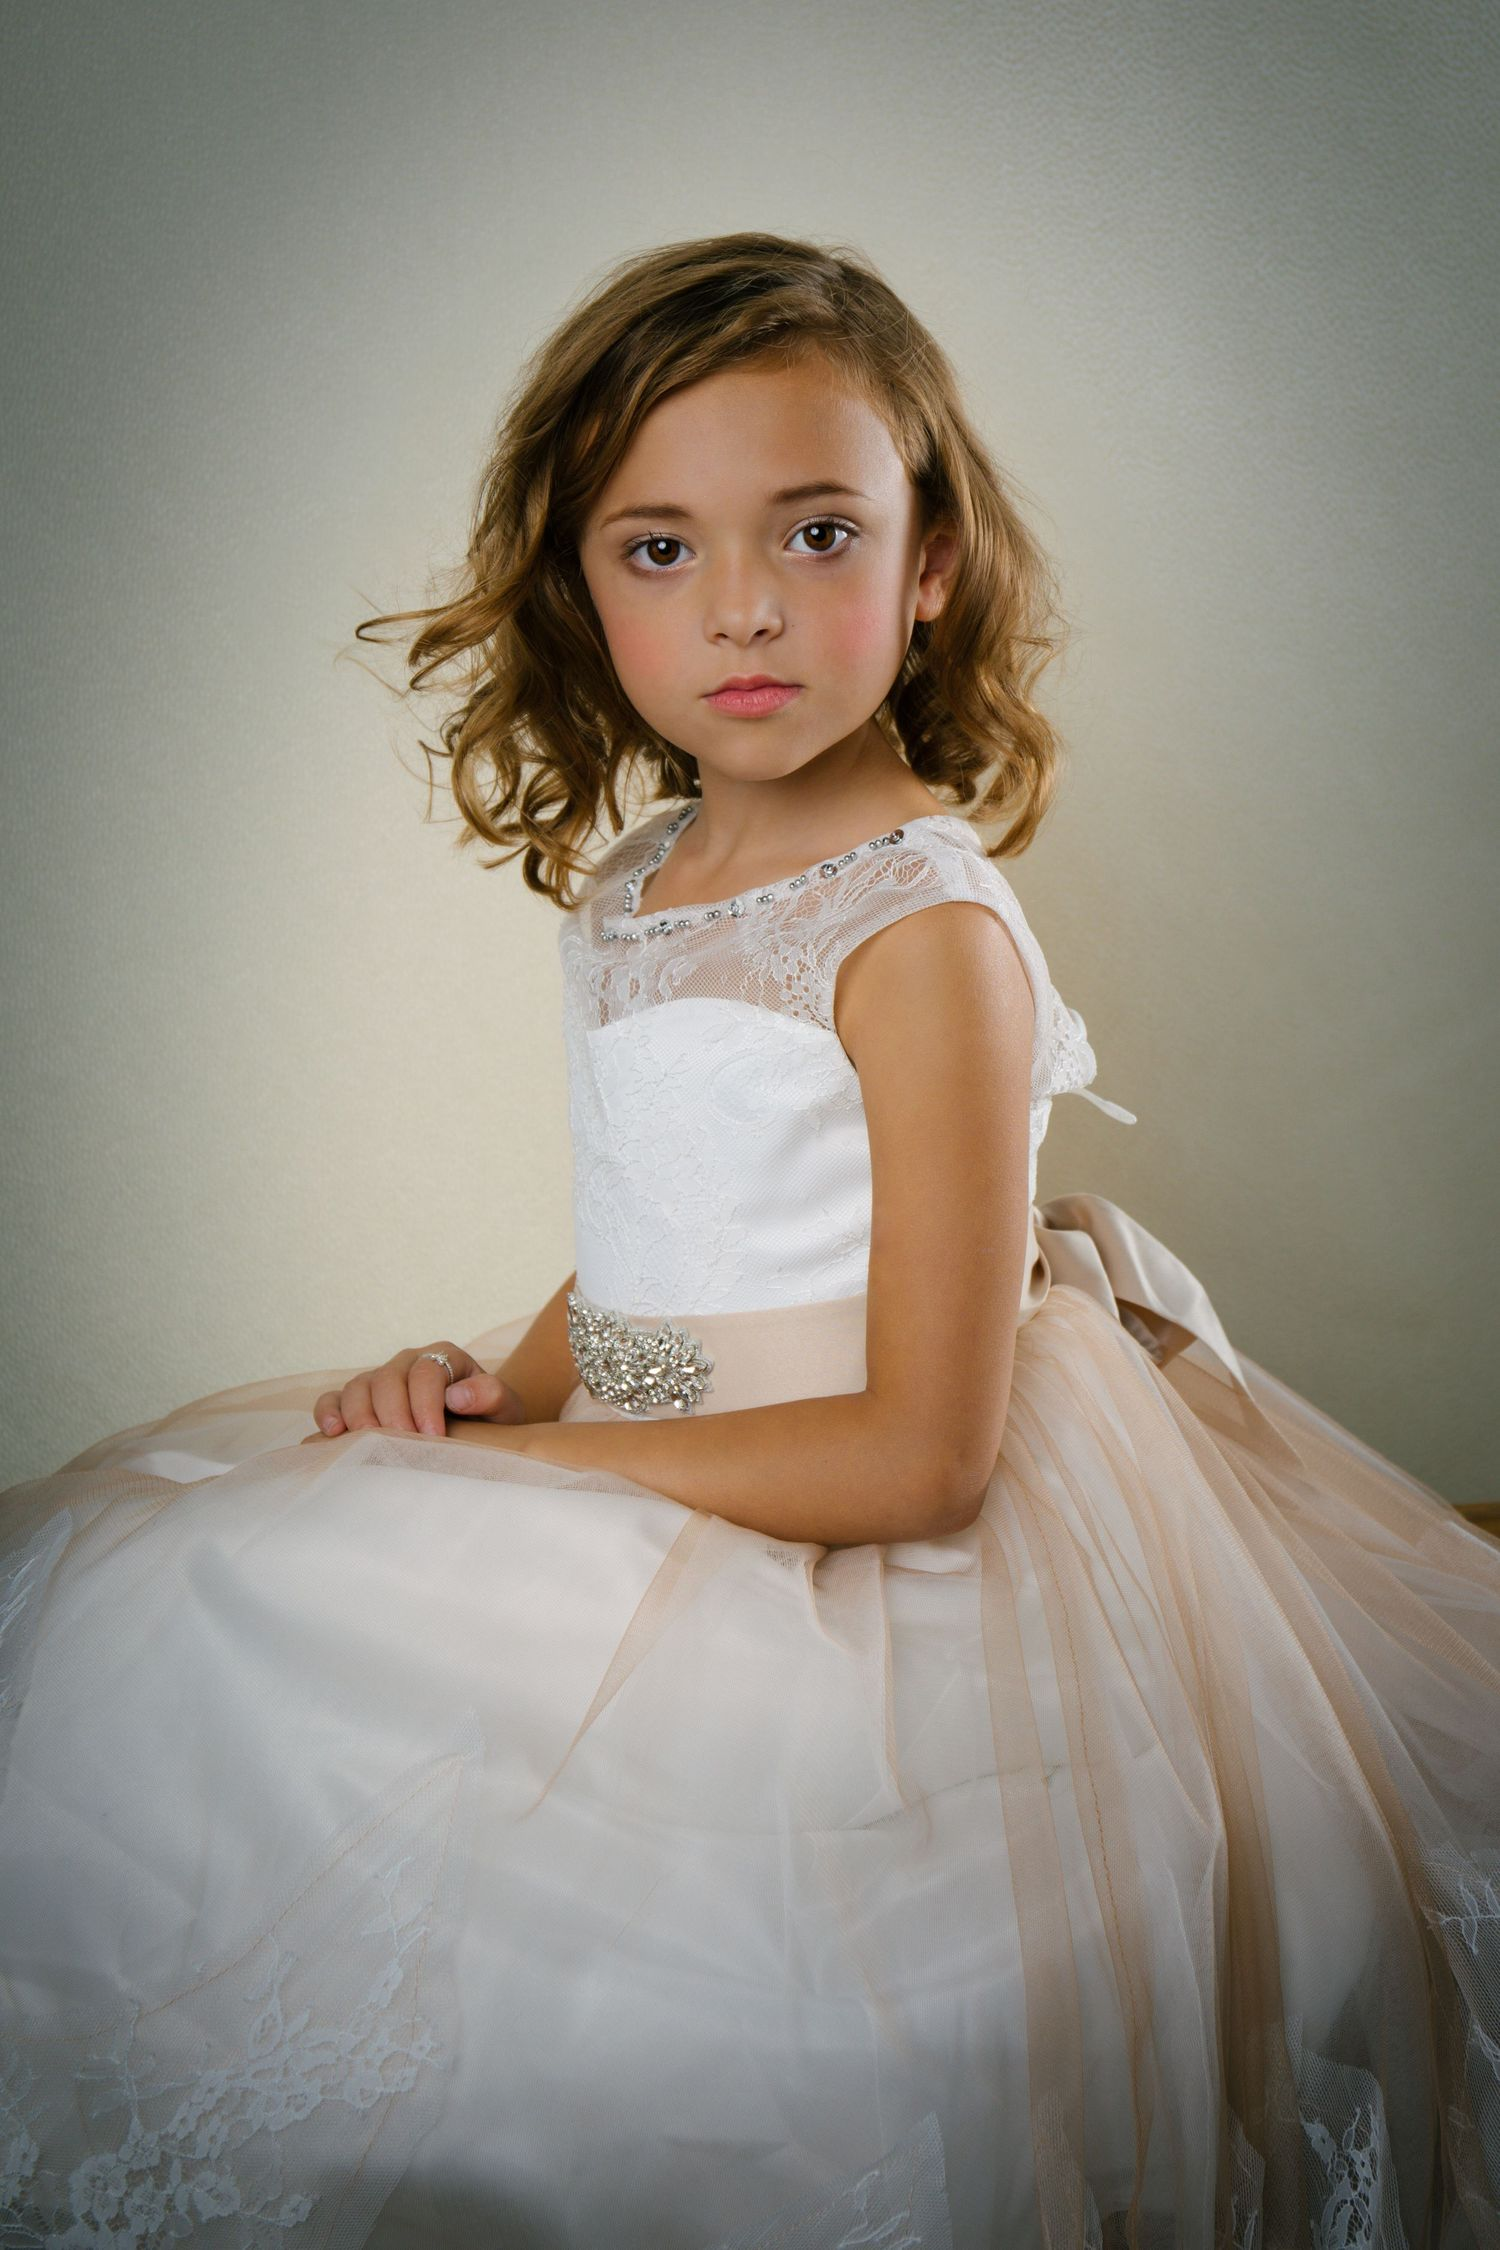 Child Couture, Glamor Portrait, Styled Portrait